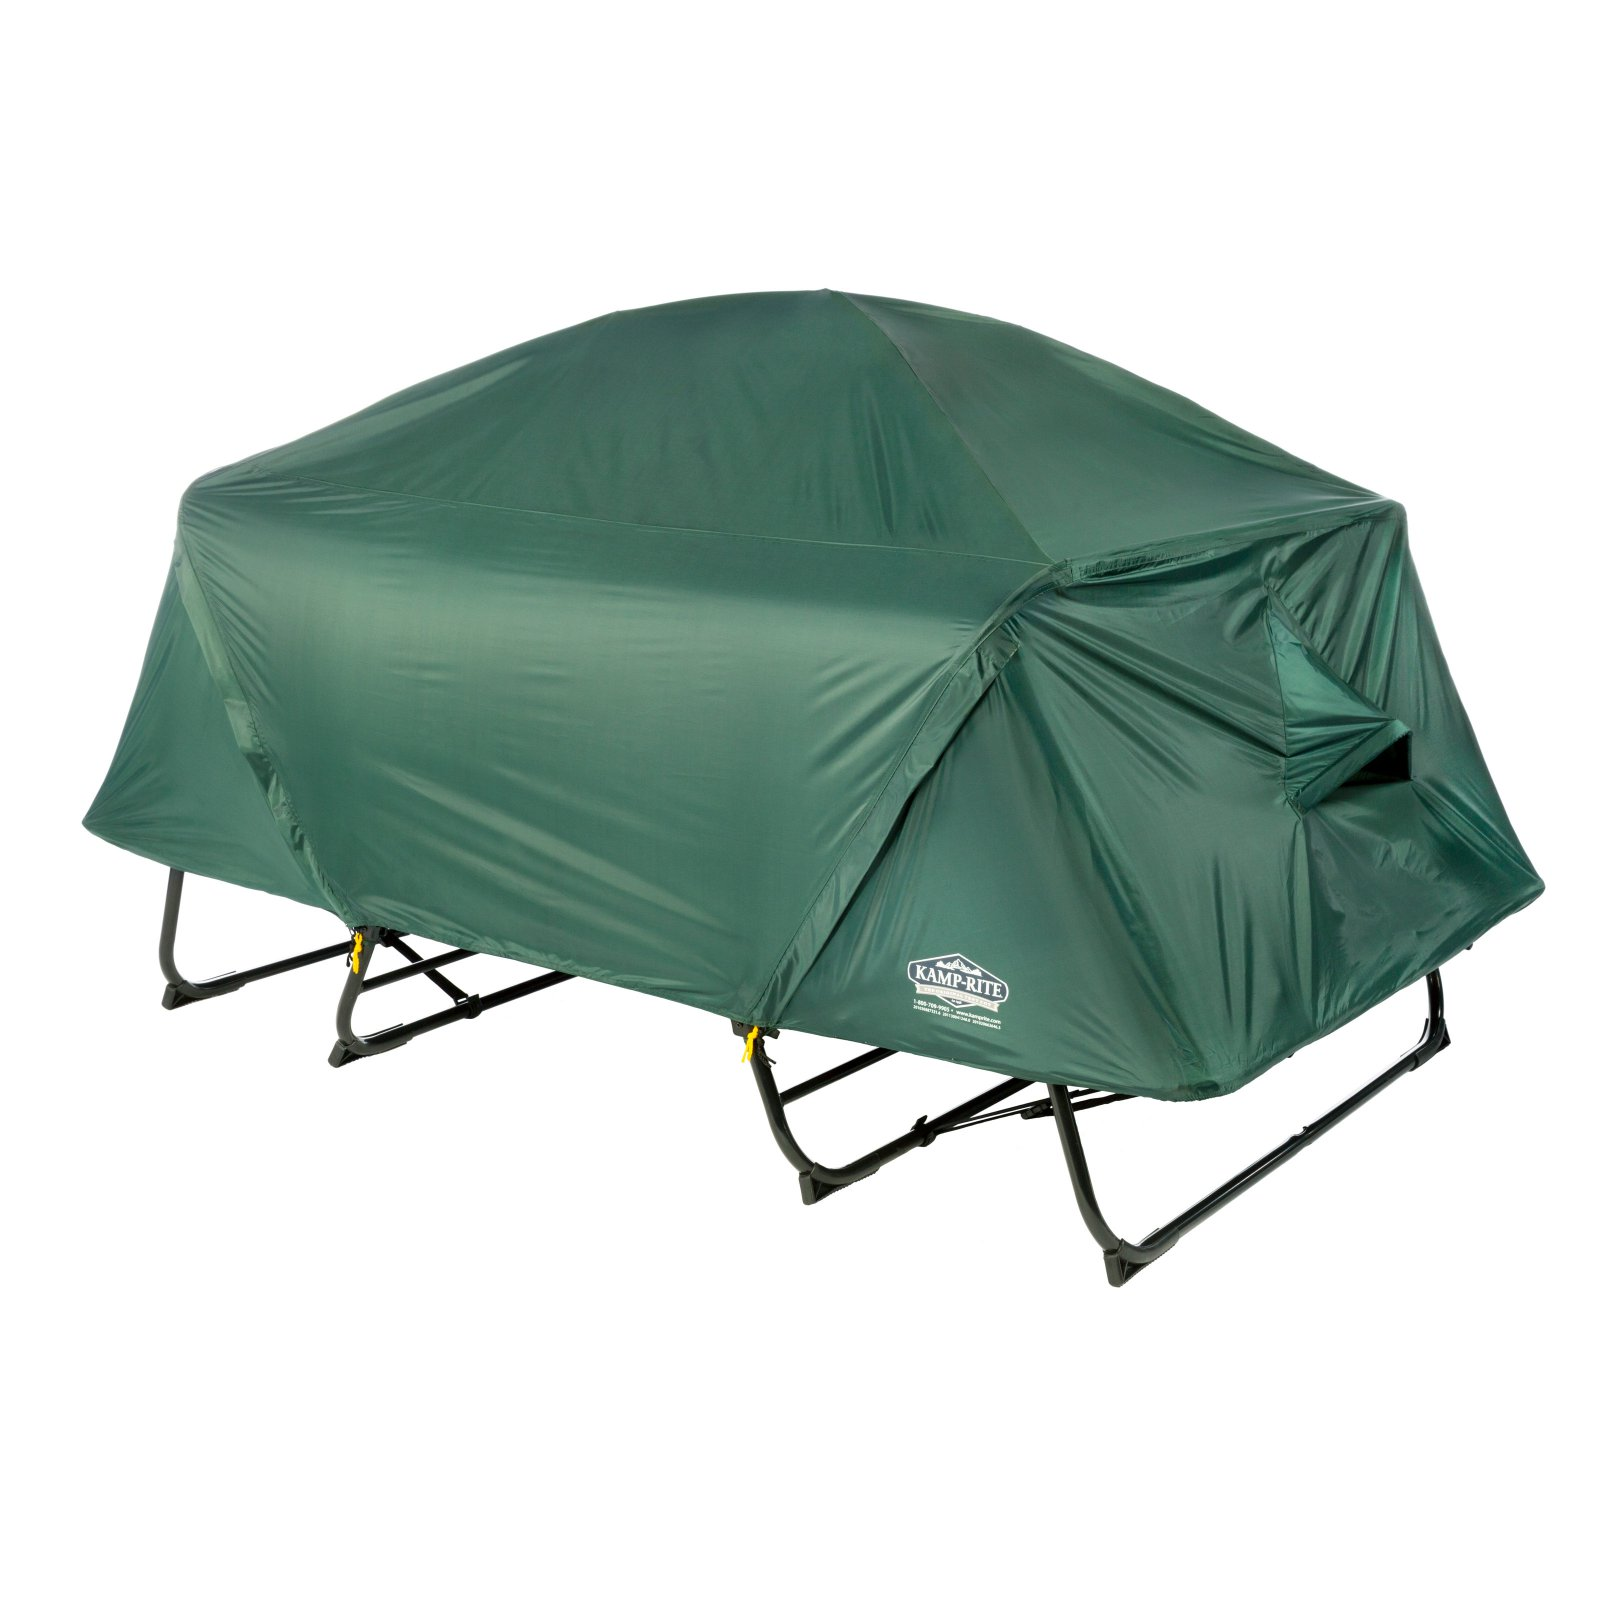 Tent Cot Double Collapsible Combo Tent Cot by Tent Cot